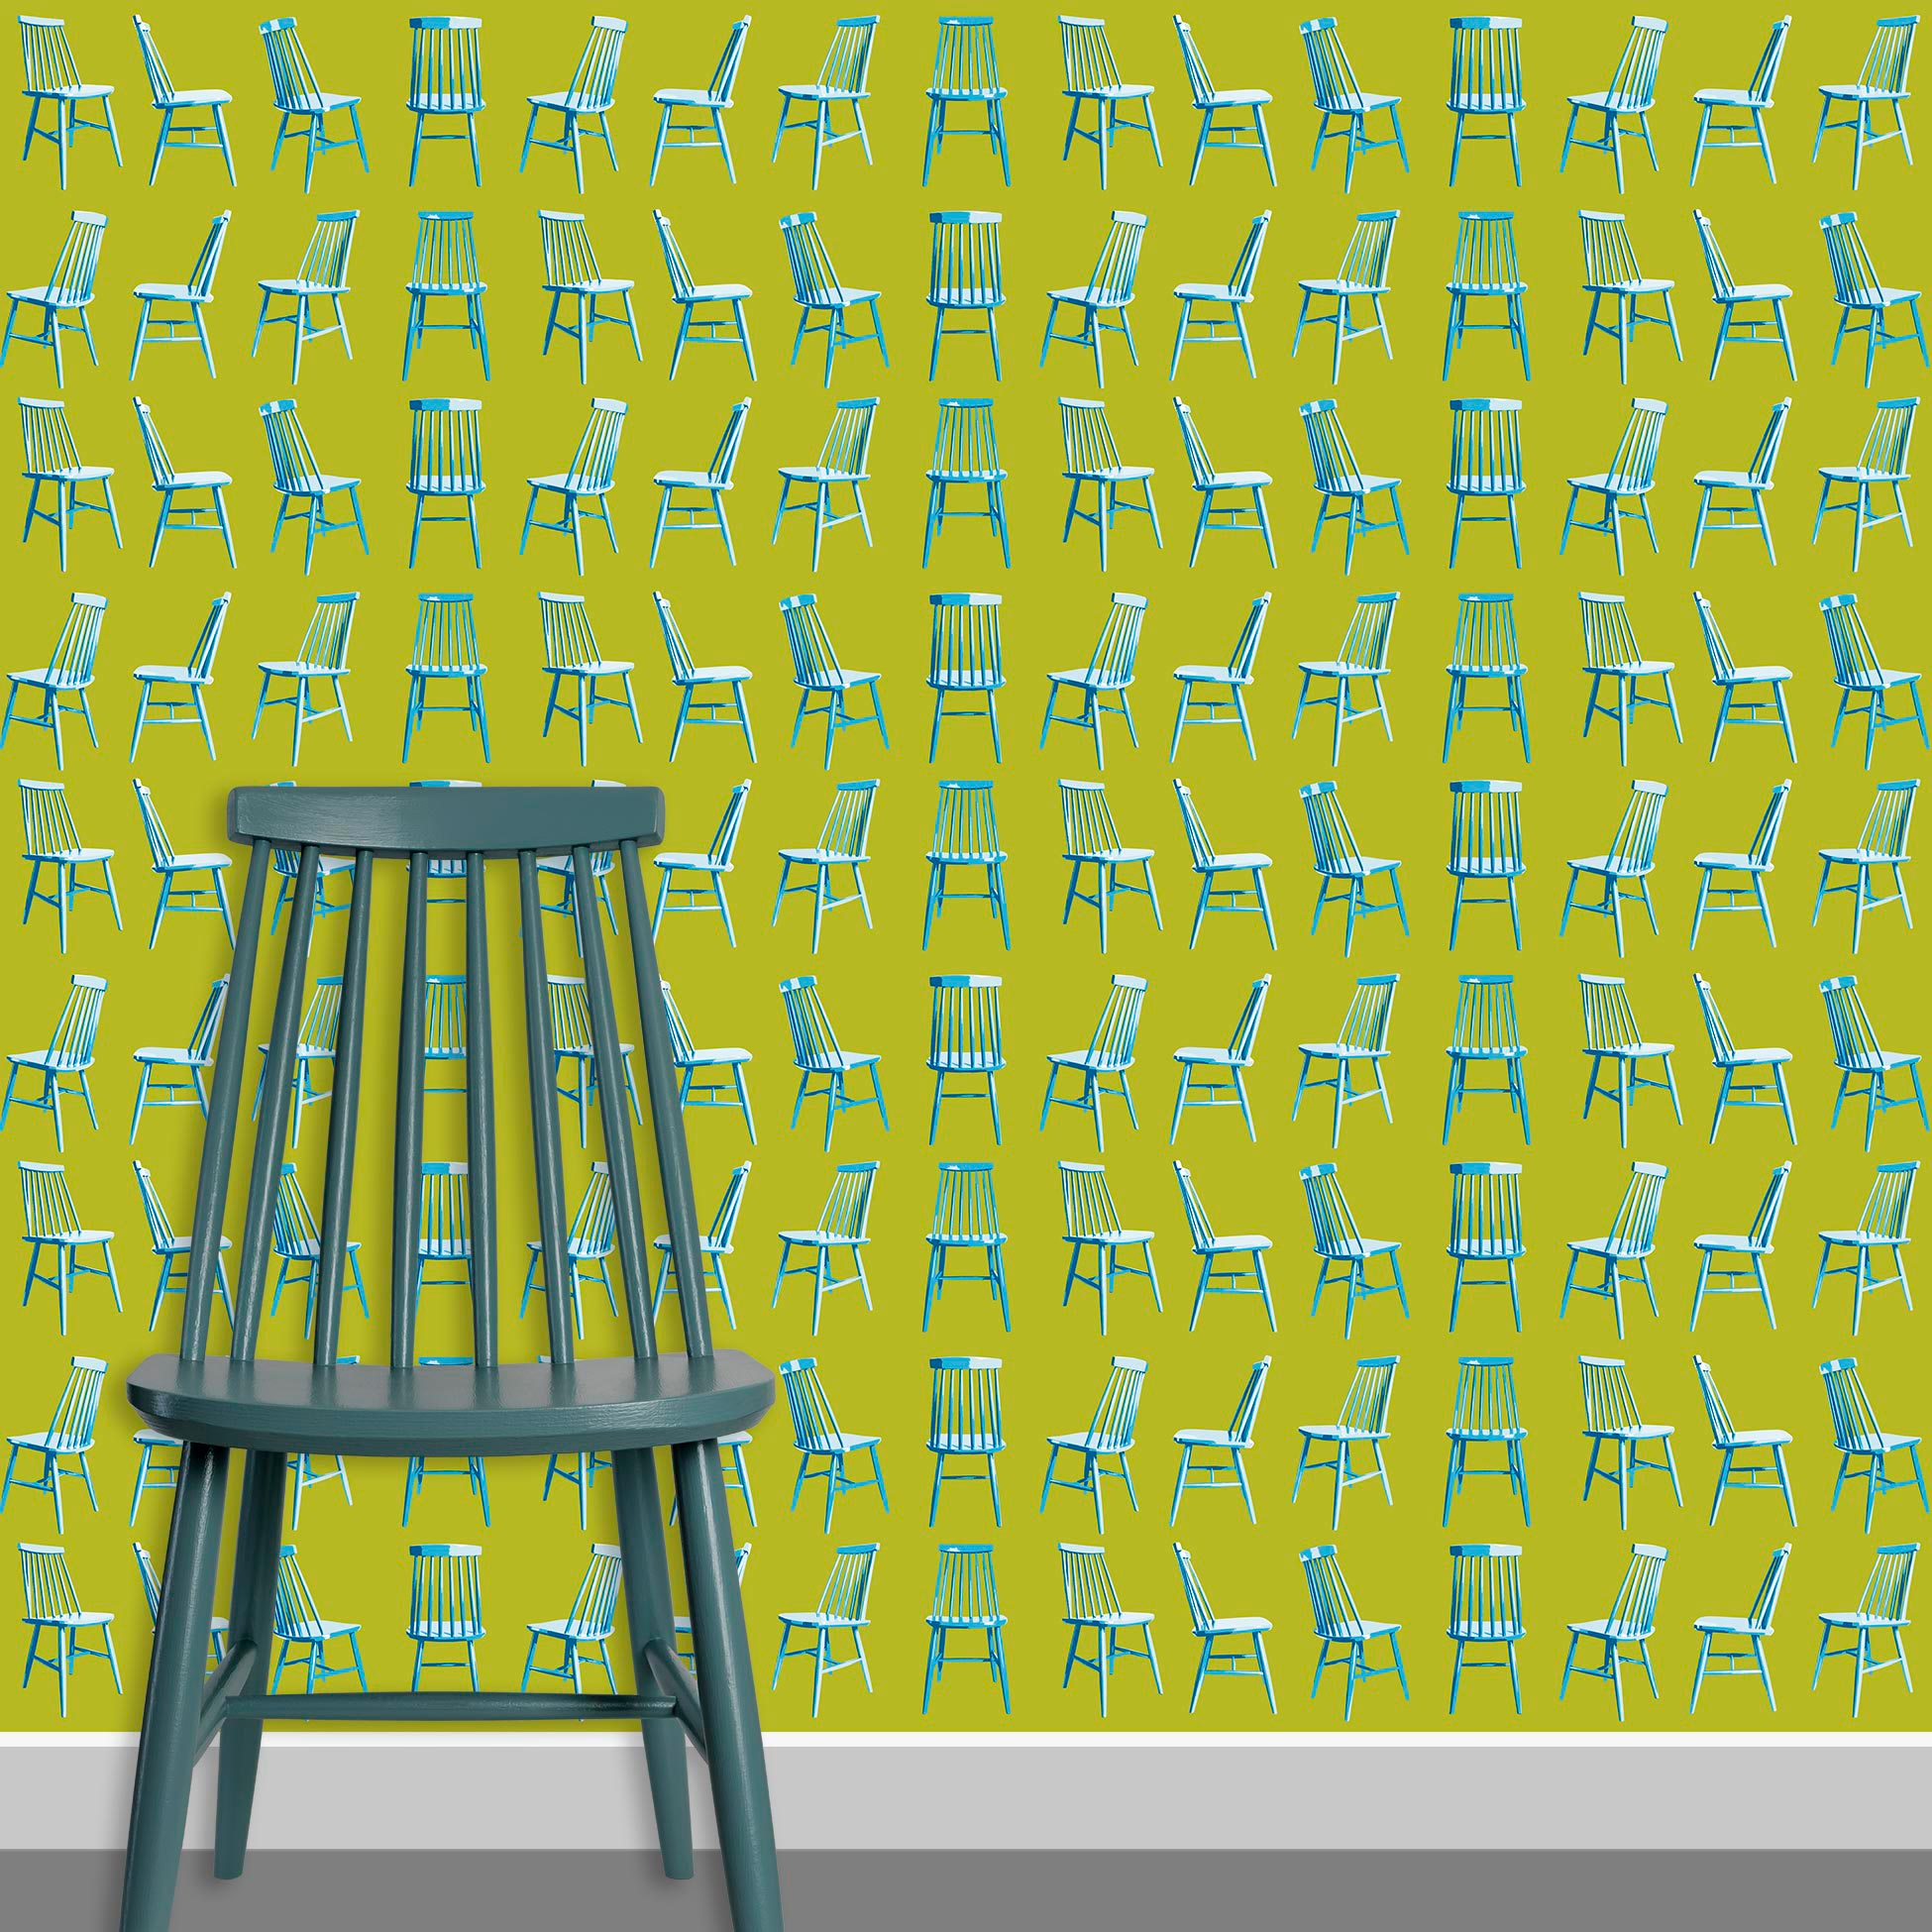 Contact Page Square - Mid Century Modern Chairs Pattern Design 2